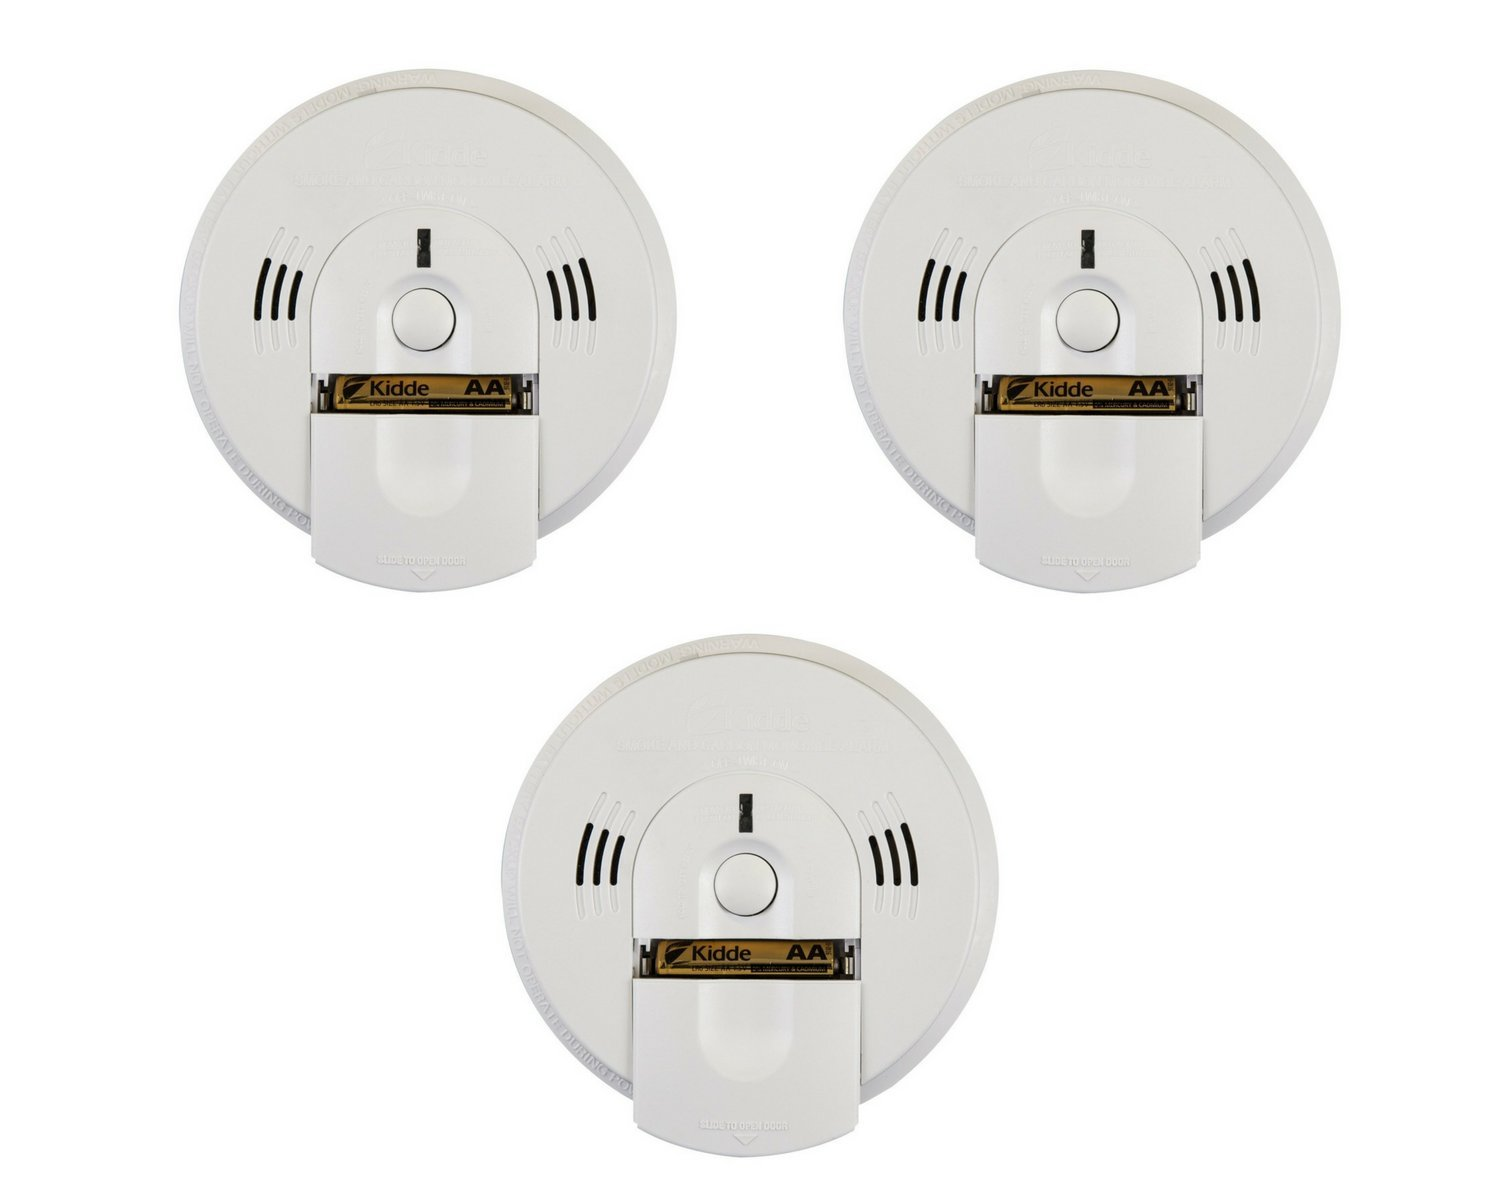 Kidde KN-COSM-BA Battery-Operated Combination Carbon Monoxide and Smoke Alarm with Talking Alarm (3-Pack) by Kidde